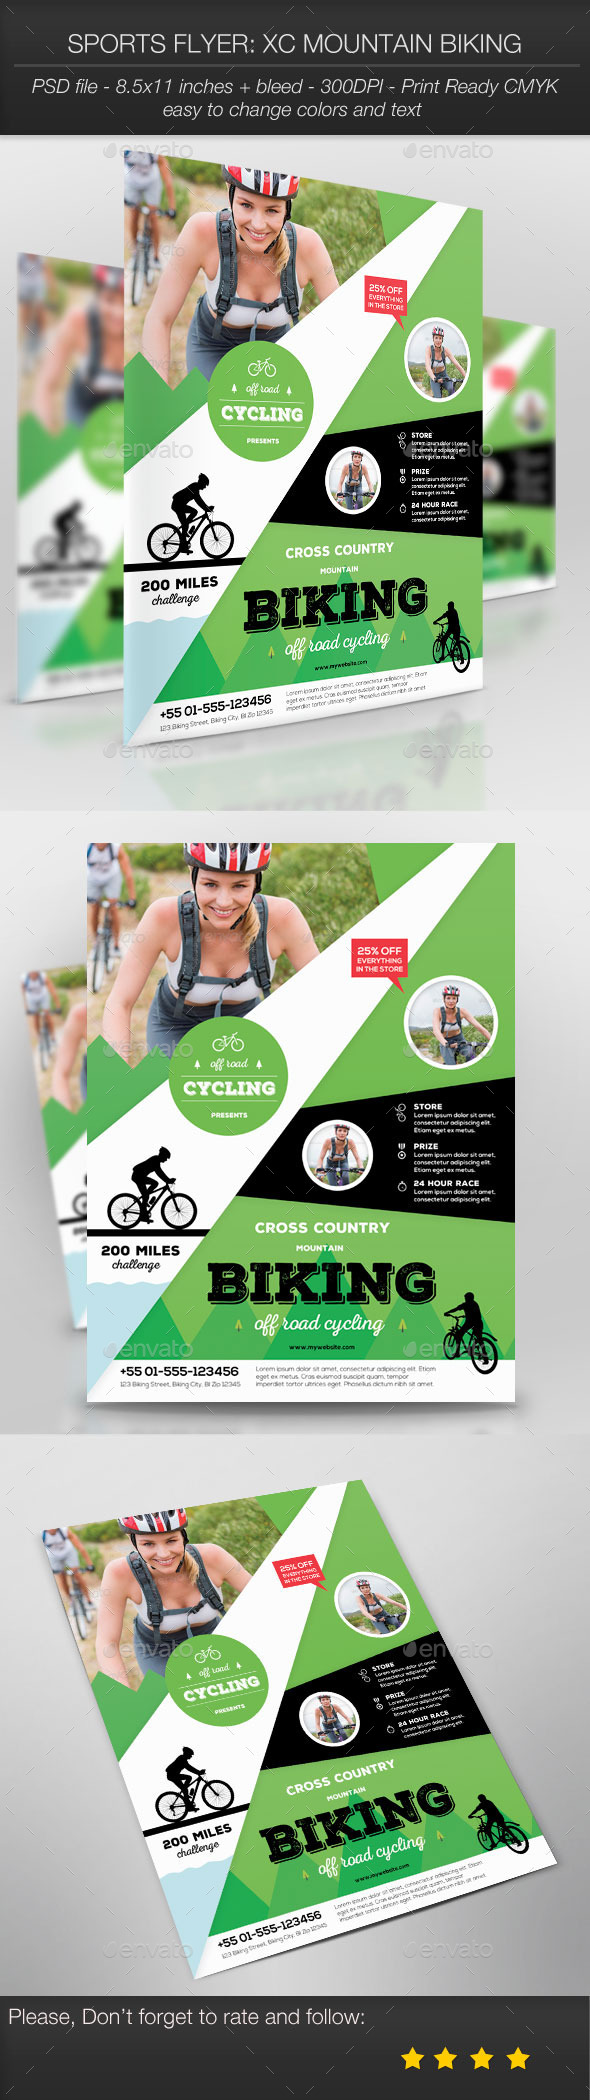 GraphicRiver Sports Flyer XC Mountain Biking 9742428